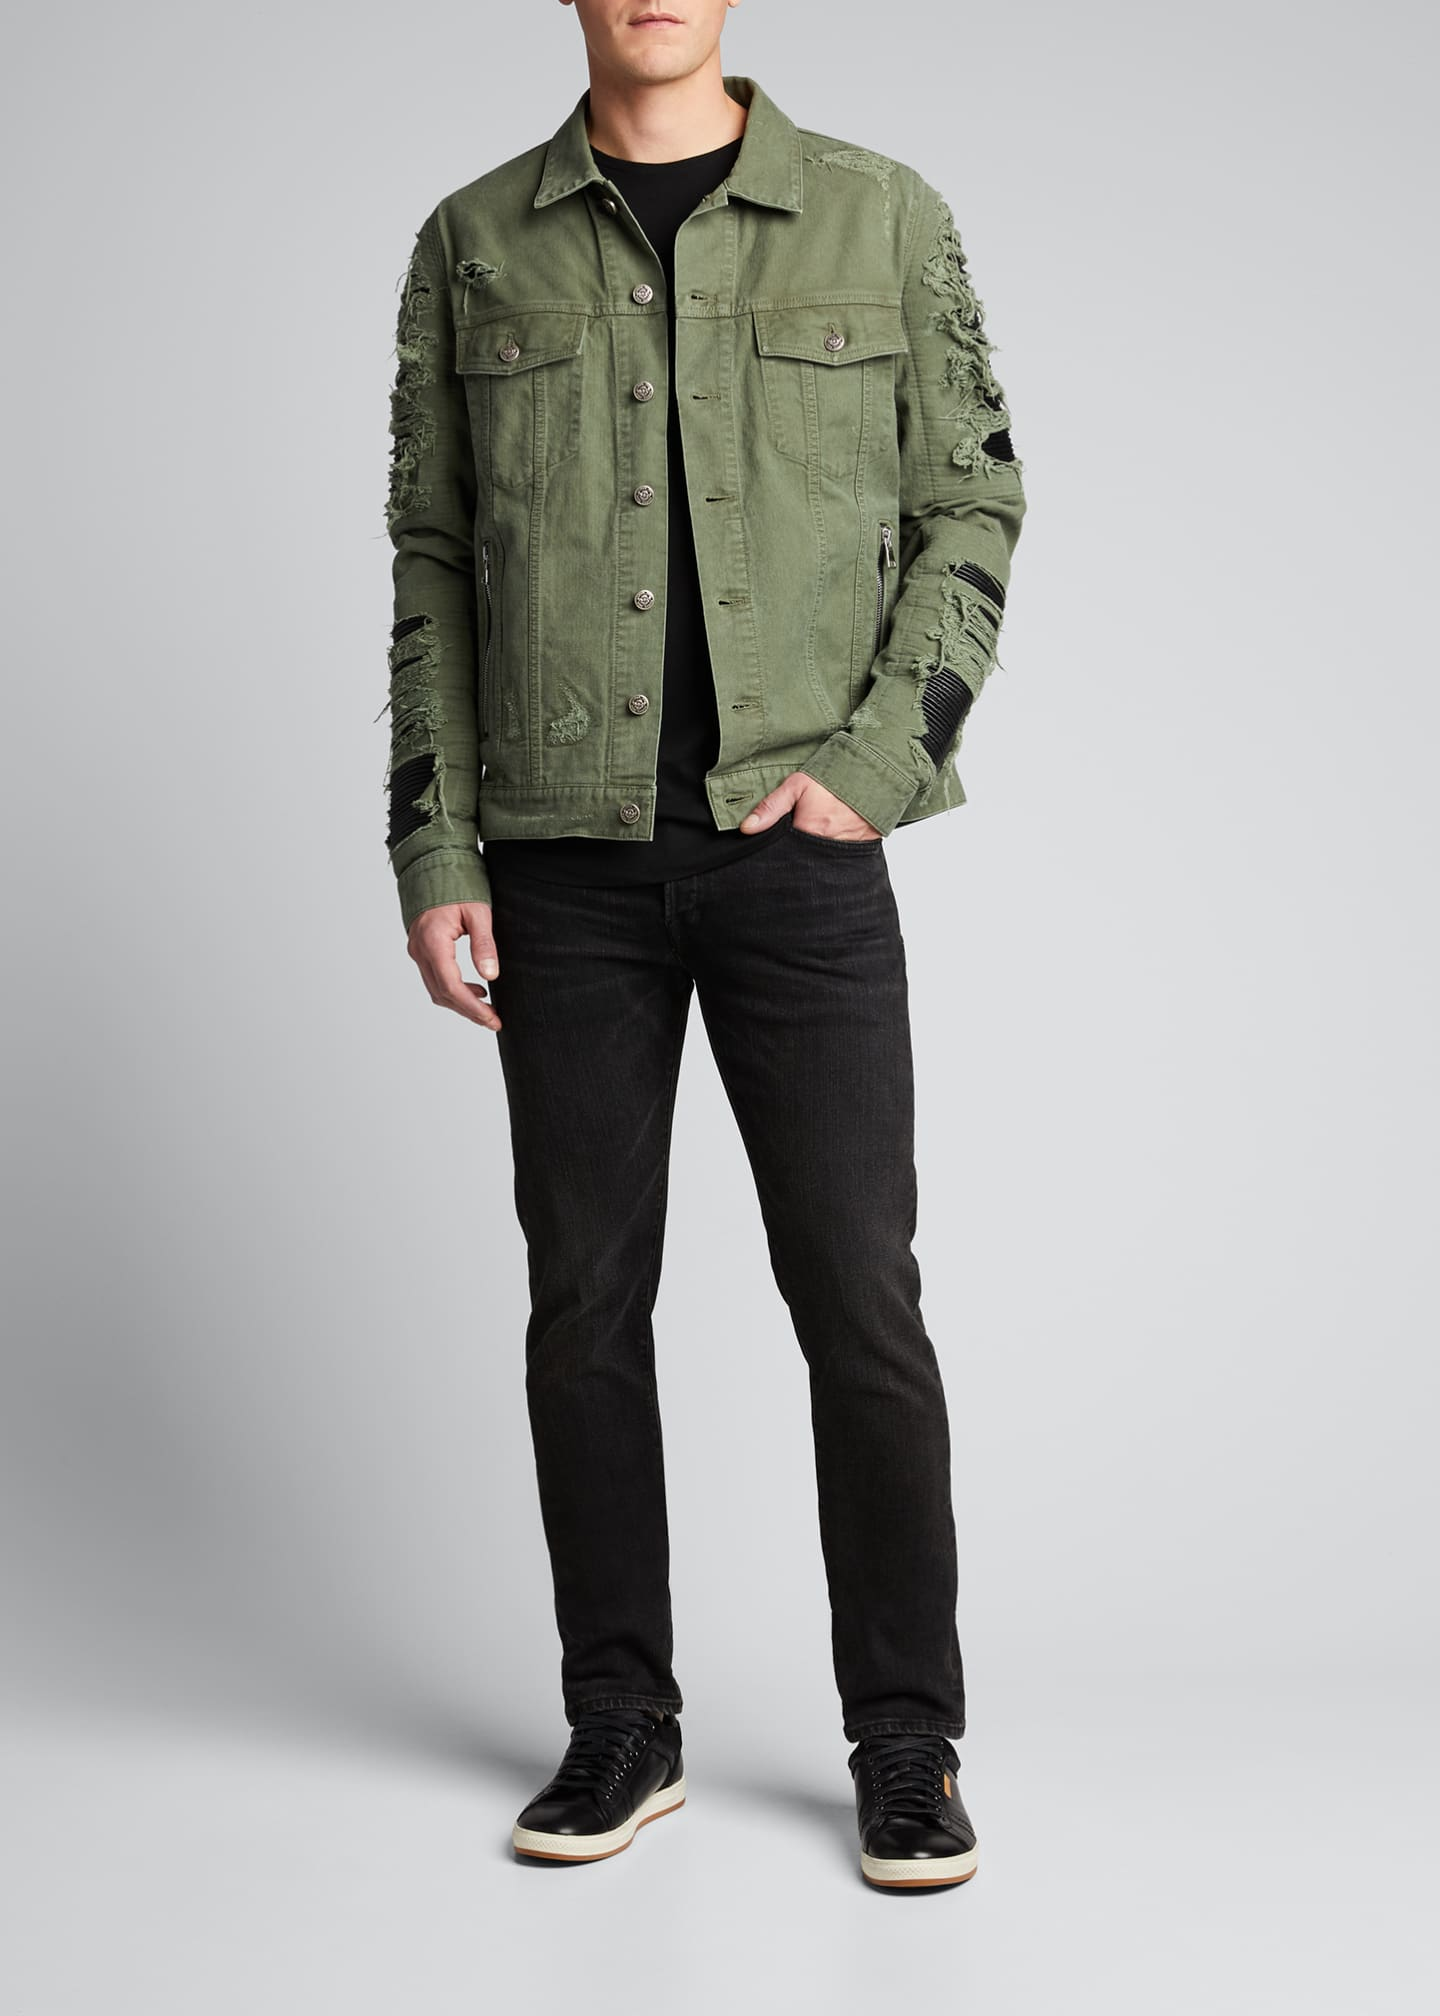 Men's Destroyed Denim & Faux-Leather Jacket